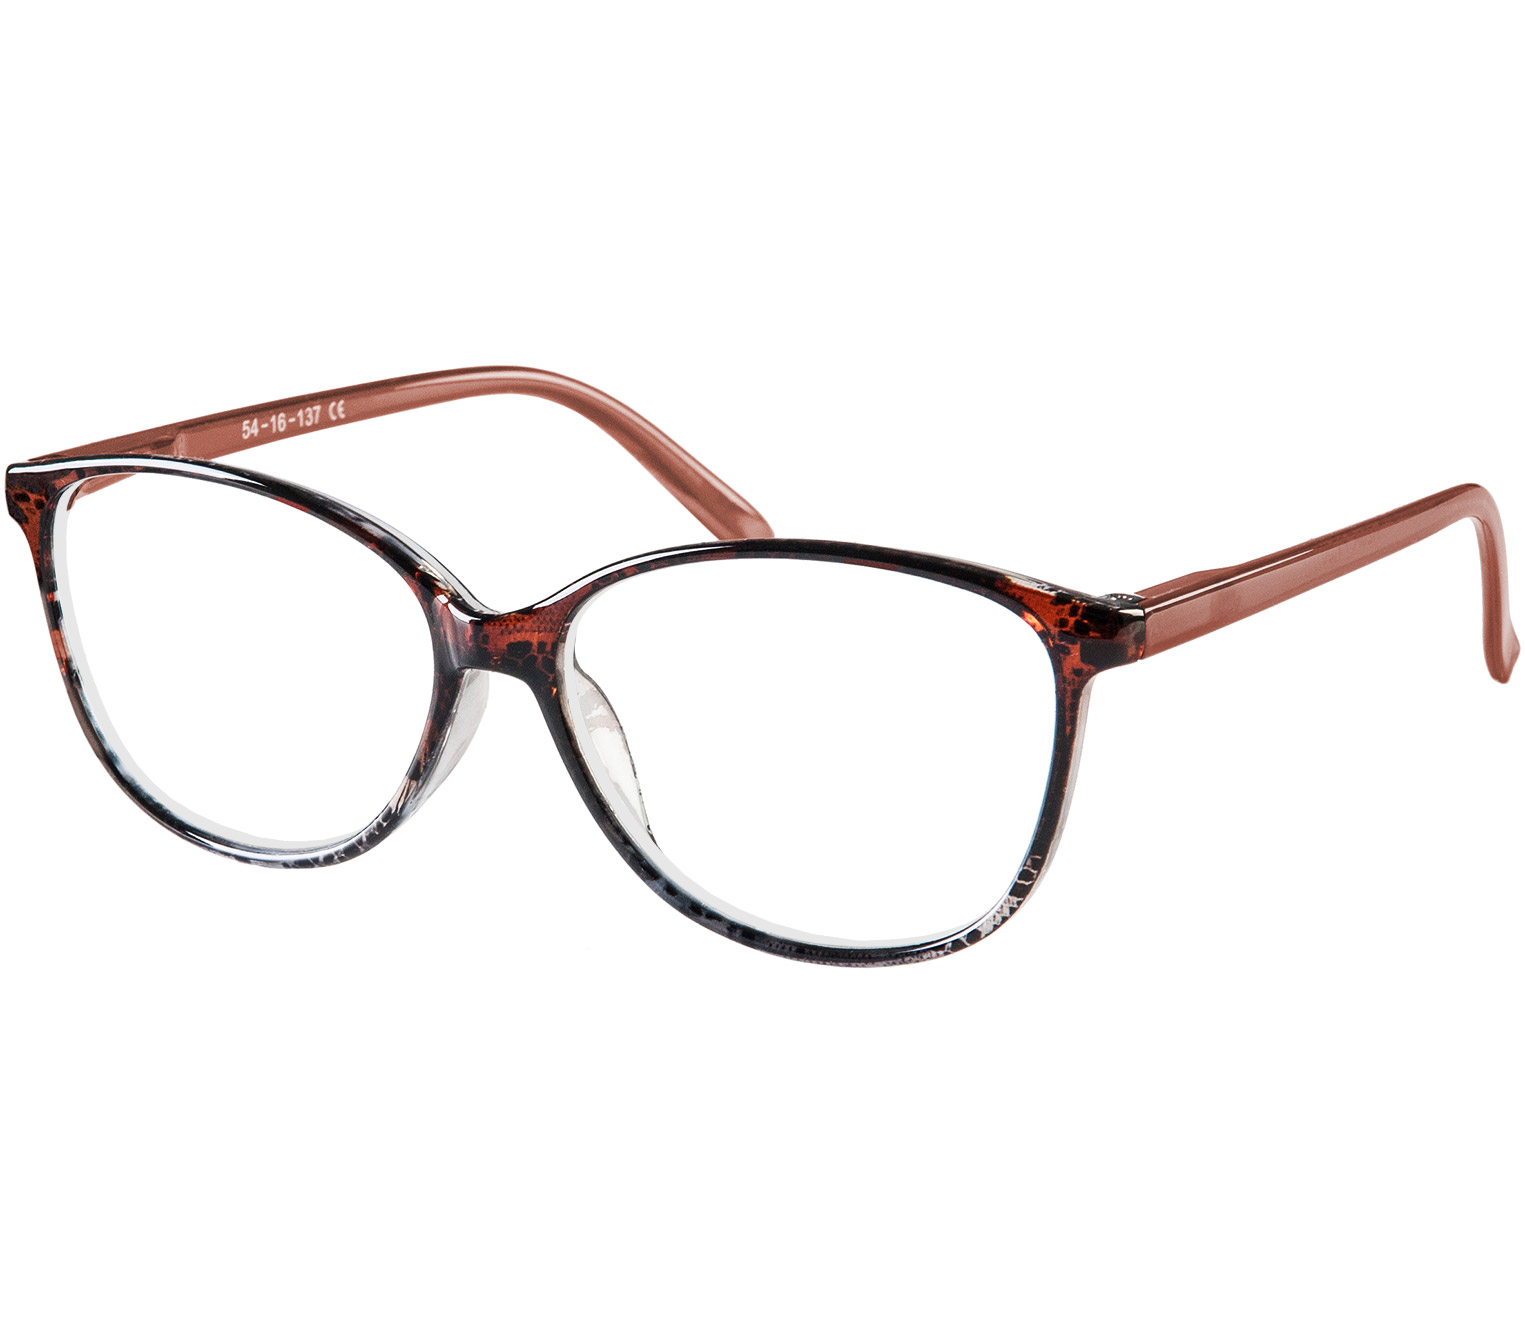 Main Image (Angle) - Zara (Brown) Cat Eye Reading Glasses